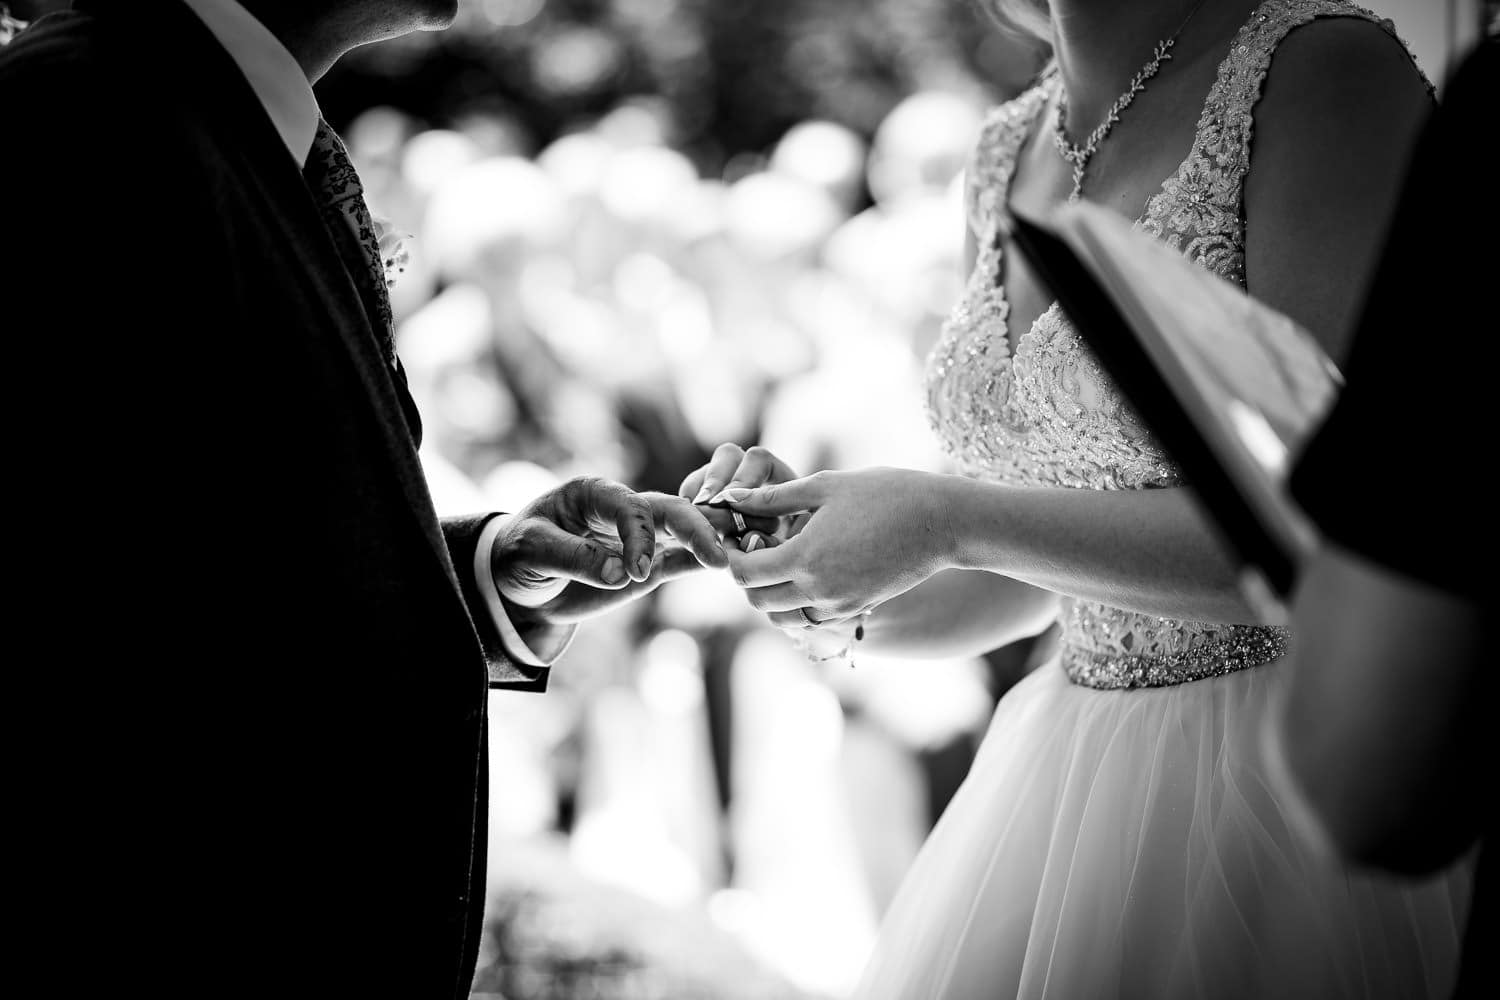 Warwick House Wedding Photography captures bride and groom exchanging wedding rings